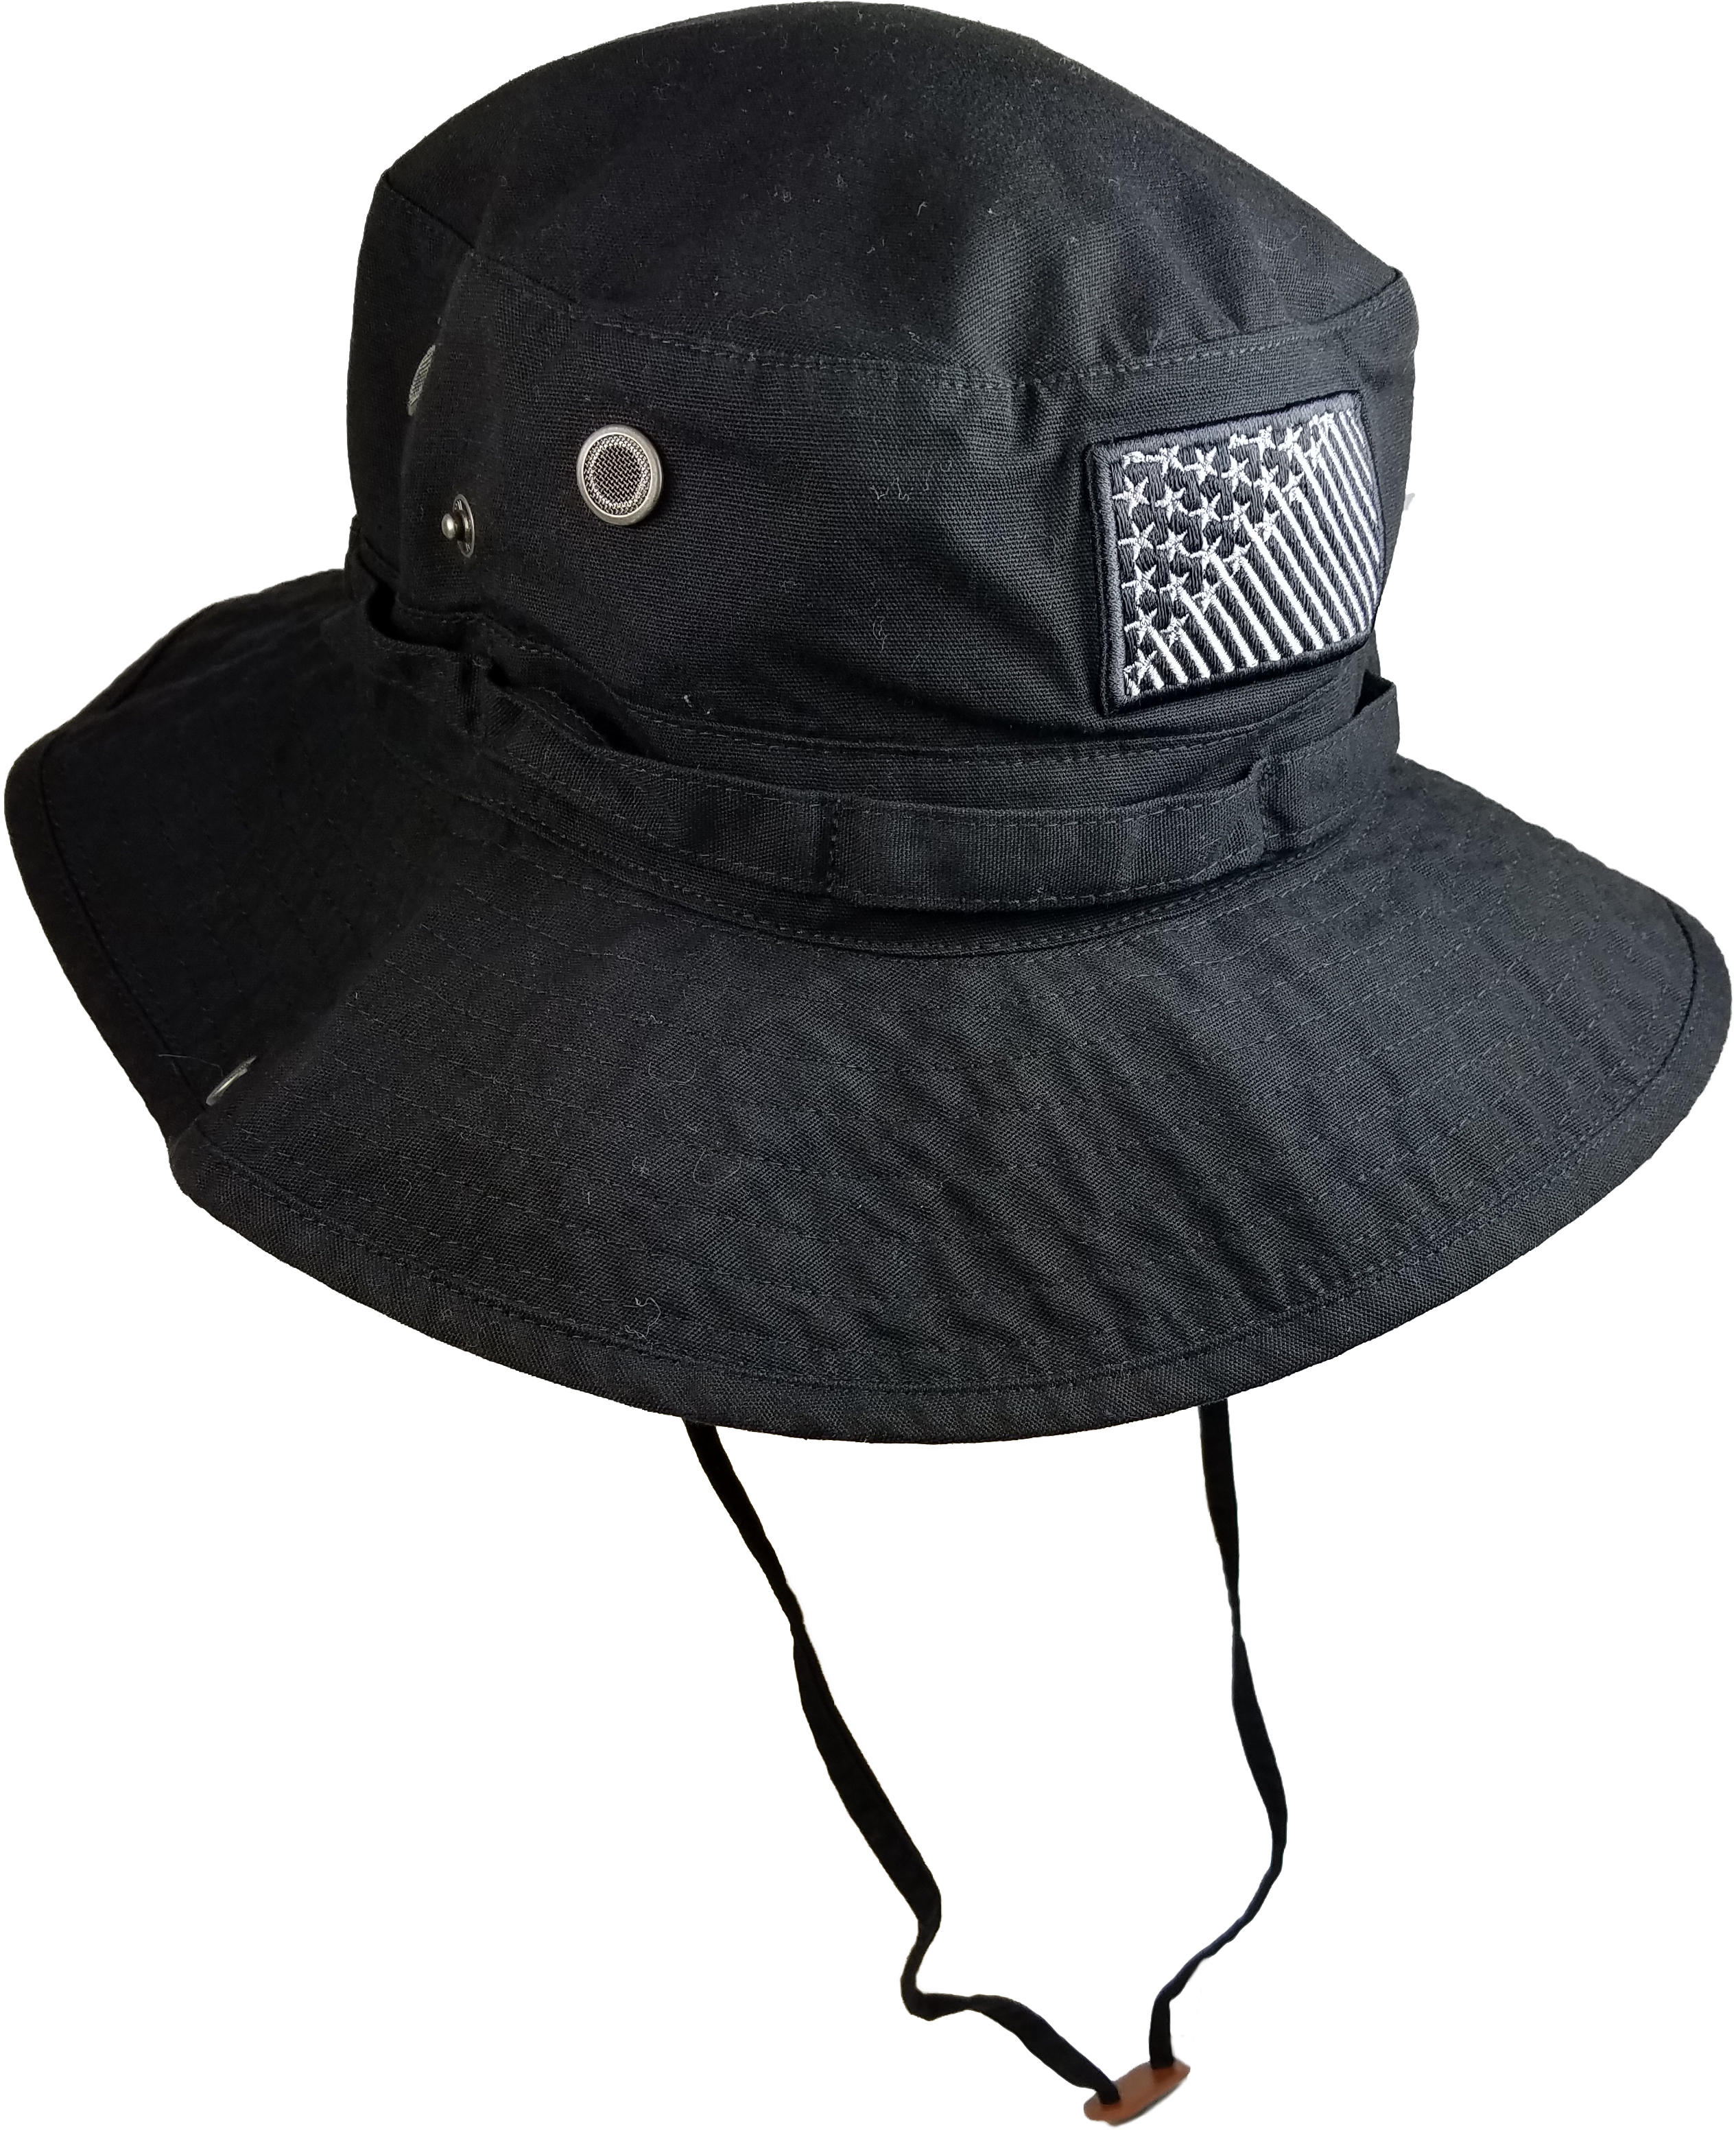 caf66ffb97a Men s Black Tonal Stars Cotton Boonie Hat with Adjustable Strap ...